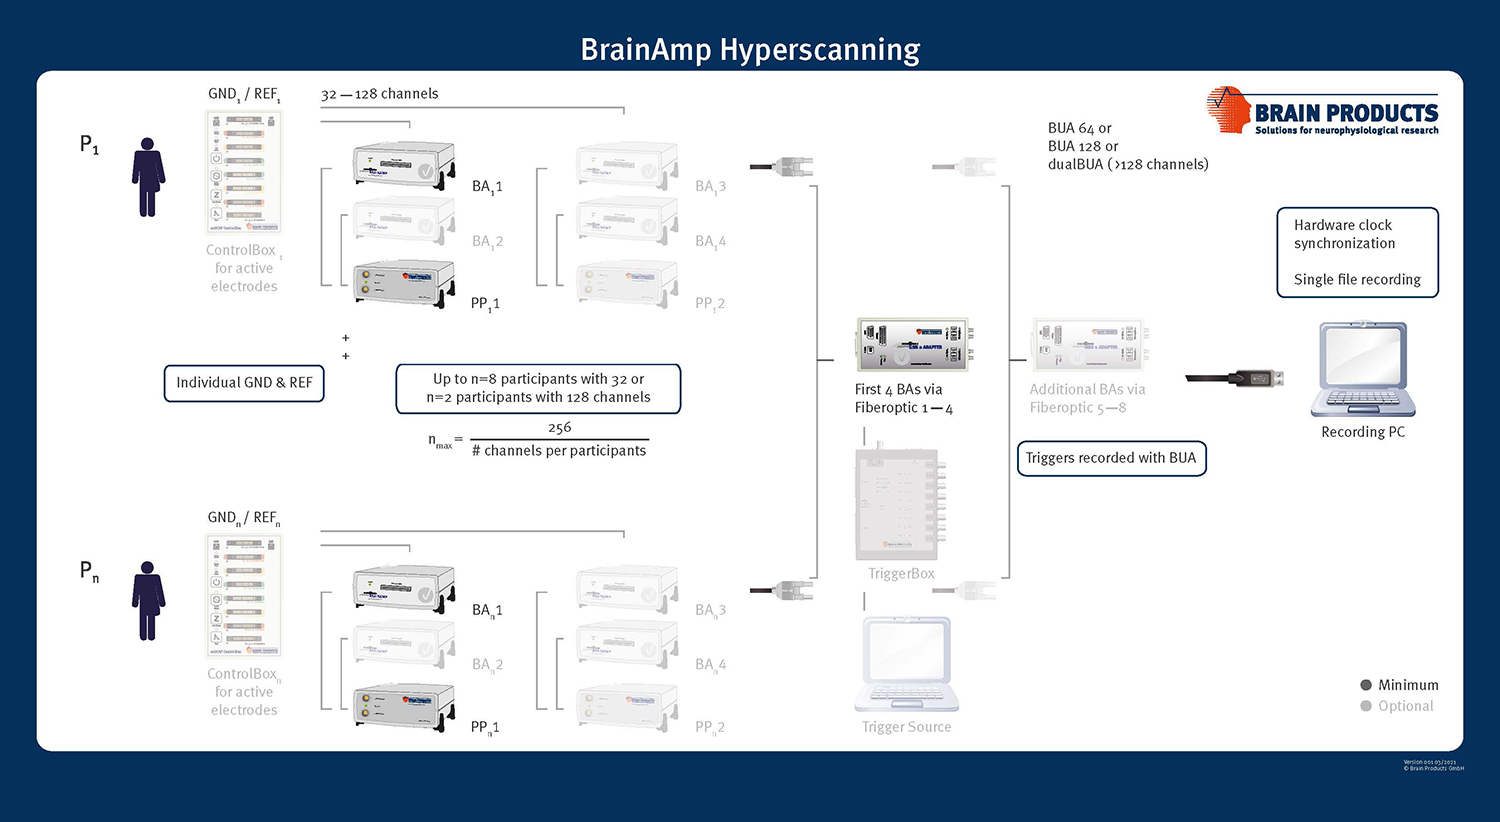 Hyperscanning with BrainAmps (EEG): This figure demonstrates all the different options for hyperscanning with BrainAmps. Solid images indicate the minimum requirement, whereas transparent images show you optional additions, such as the ControlBox when using active electrodes. Note that PowerPacks can power up to two devices, but cannot be shared between participants. The fiberoptic cables from all the BrainAmps need to be connected to the BUA corresponding to the participant sequence. An optional trigger source is connected to the BUA via the TriggerBox and all triggers and signals are synchronized and saved on one single recording computer in a single file.